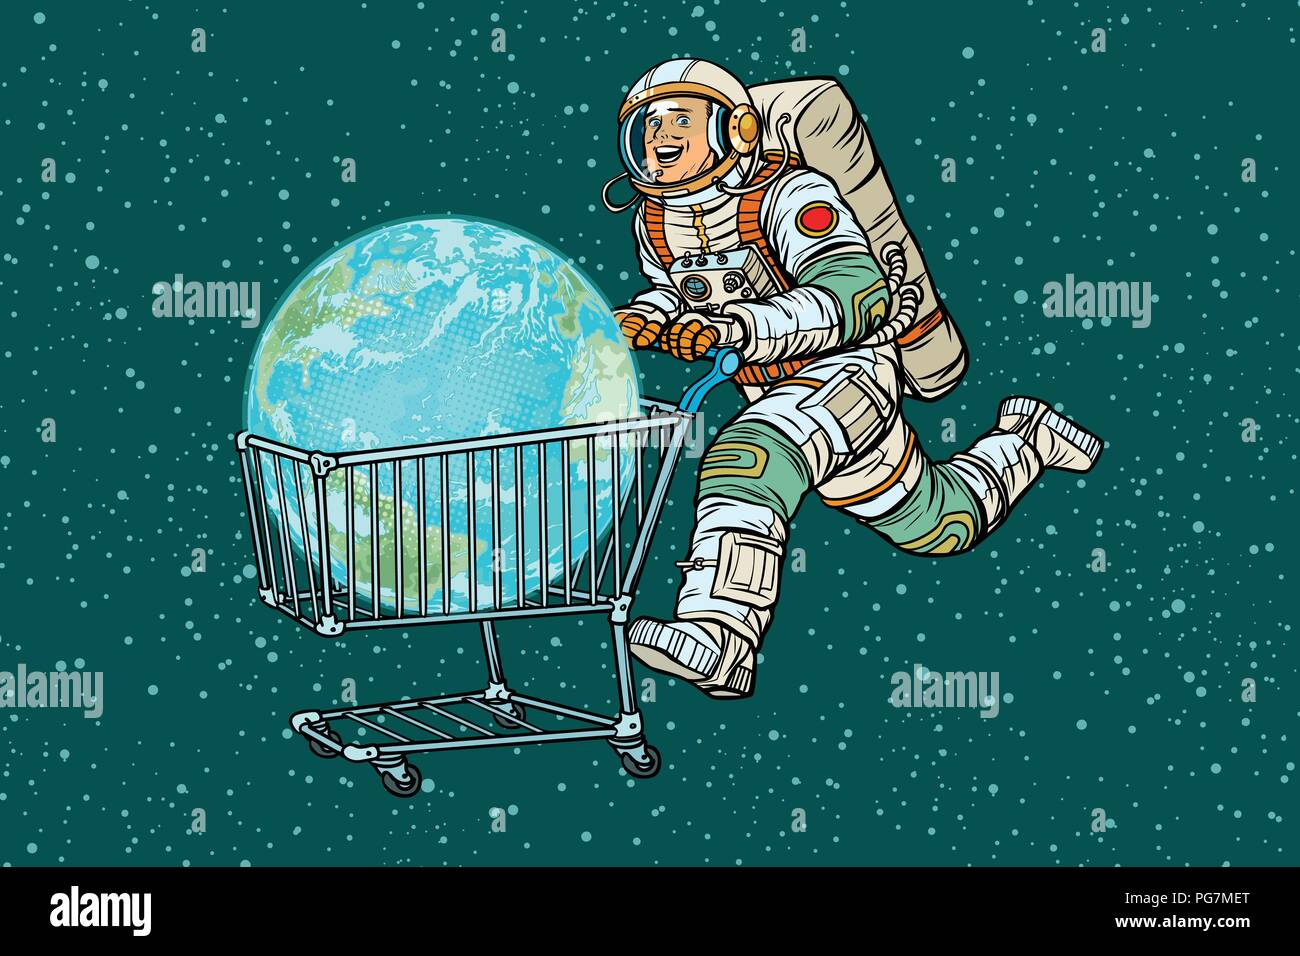 planet earth bought by astronaut, shopping cart trolley sale - Stock Vector